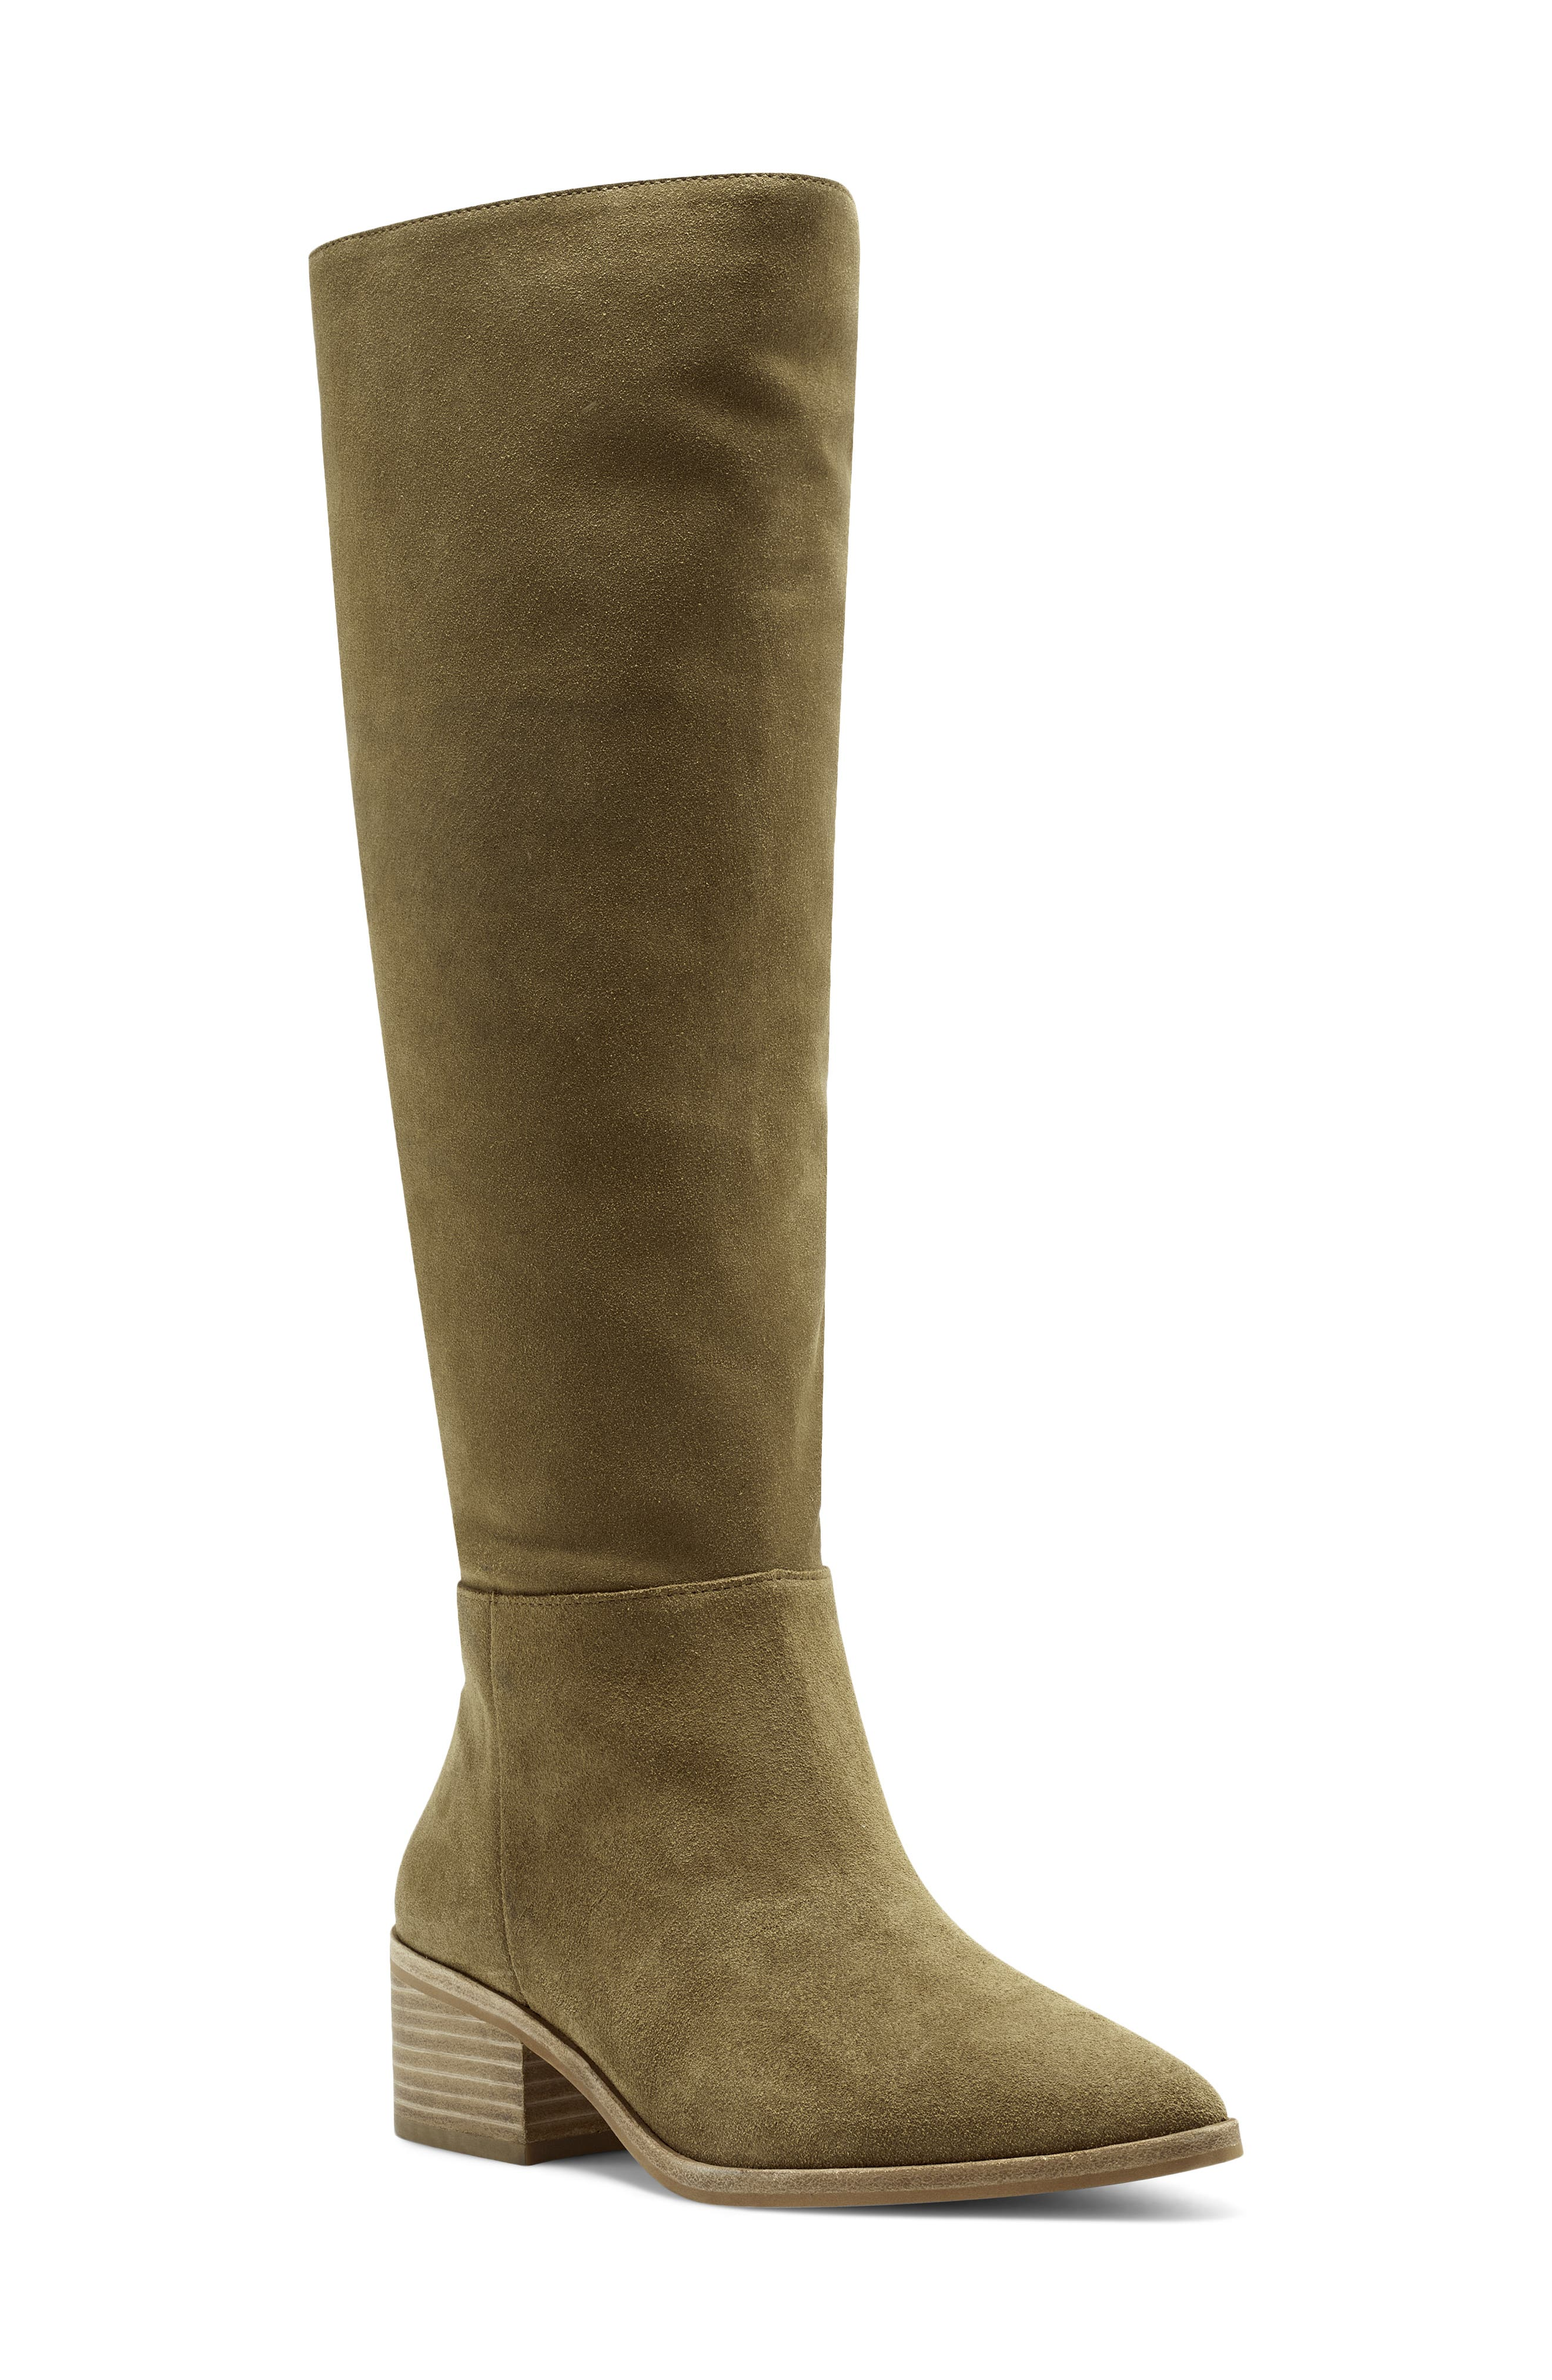 Grounded by a sturdy stacked heel, this everyday boot is cut with a figure-elongating knee-high shaft and sharp, pointy toe. Style Name: Vince Camuto Beaanna Knee High Boot (Women). Style Number: 6052316. Available in stores.